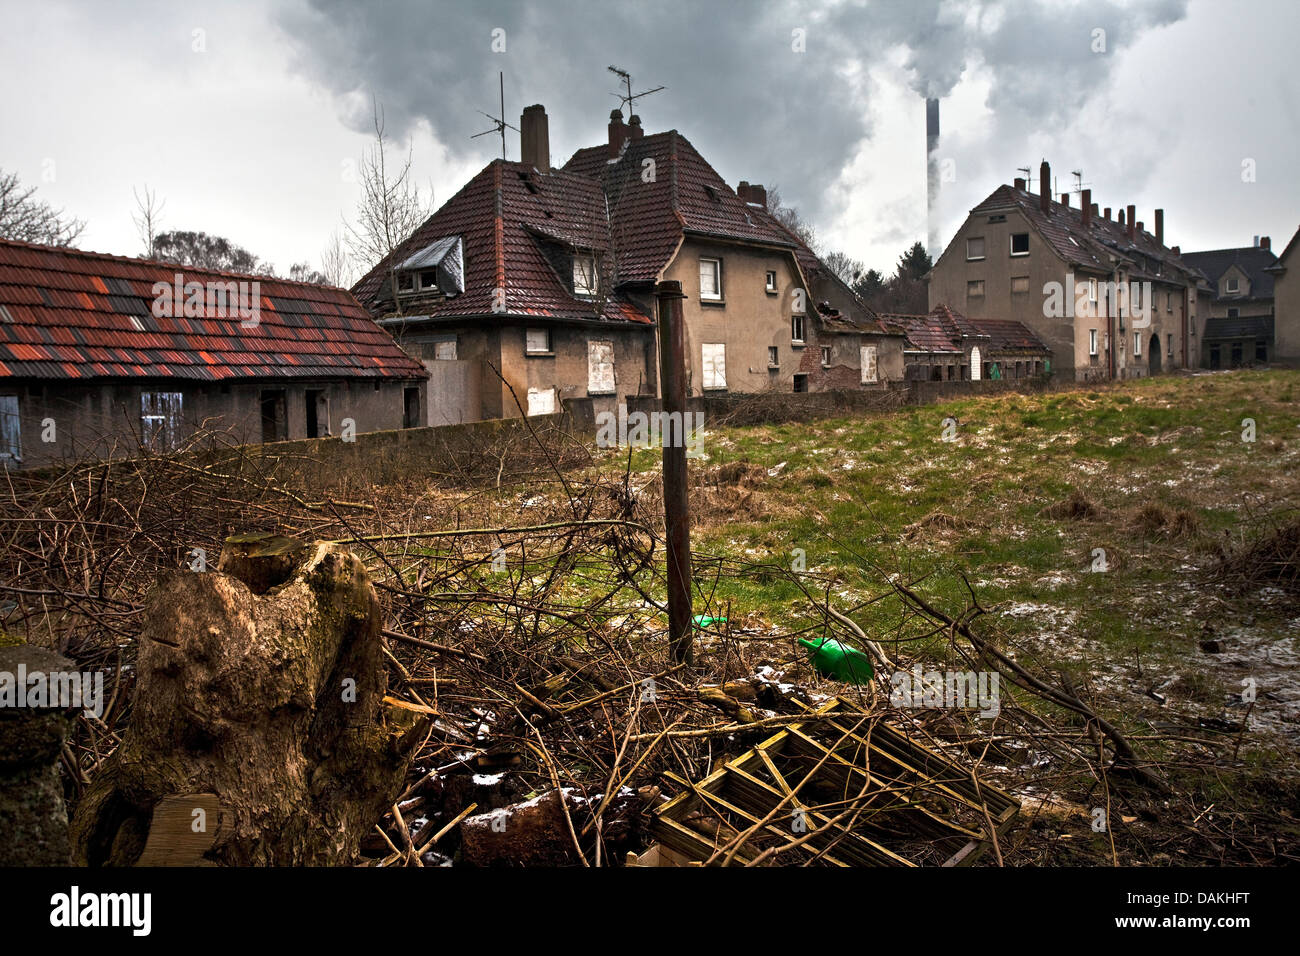 abandoned and decaying districts of miners Schlaegel und Eisen, Germany, North Rhine-Westphalia, Ruhr Area, Gladbeck - Stock Image